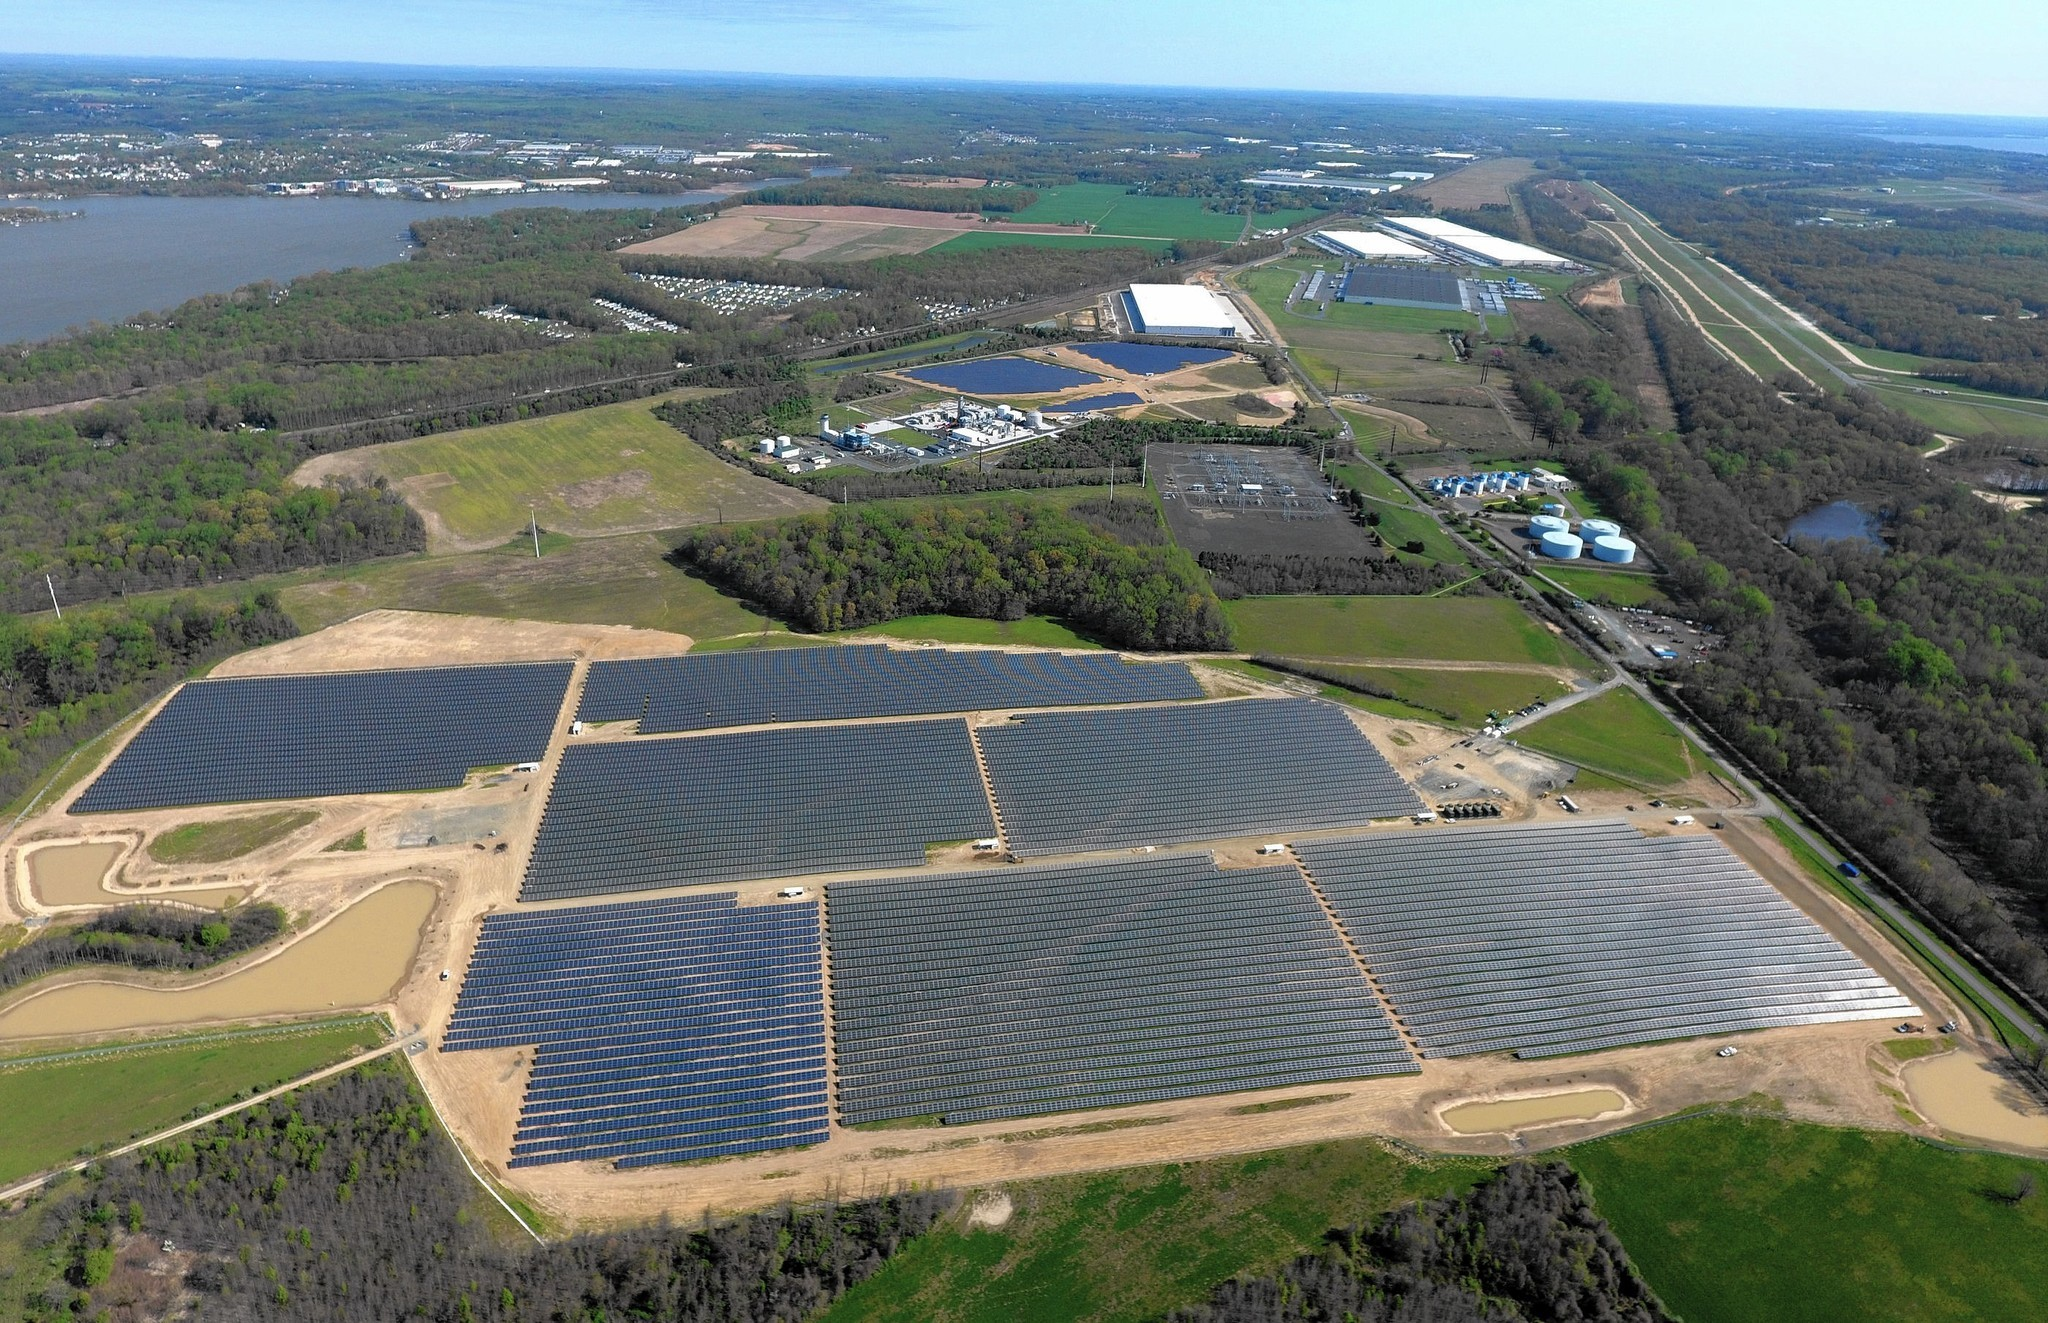 Perryman Solar Farm Offsets Use Of Fossil Fuels To